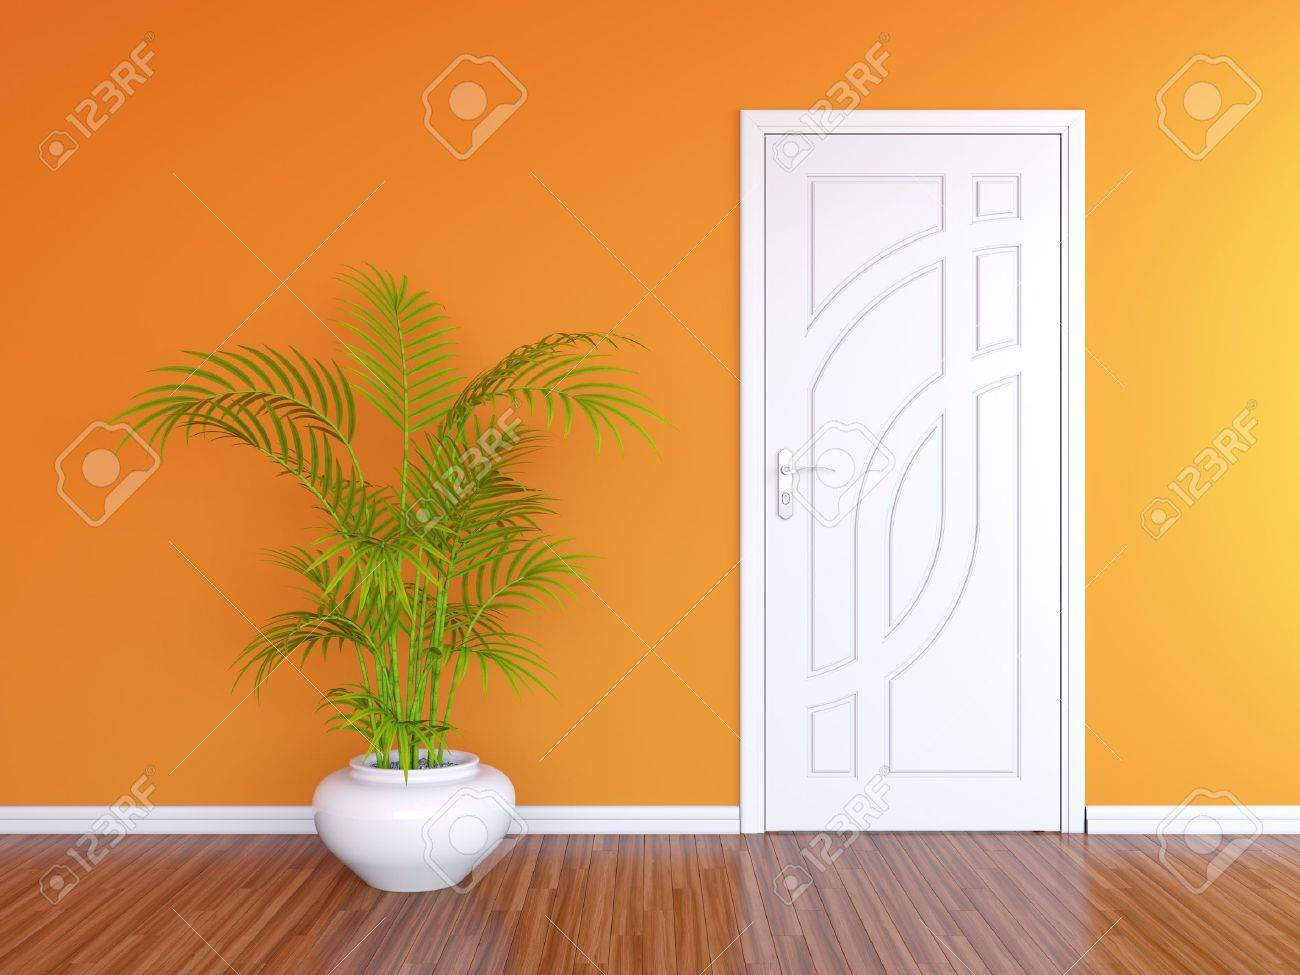 3D render of white door in orange wall and decorative plant in white vase Stock Photo - 14517202